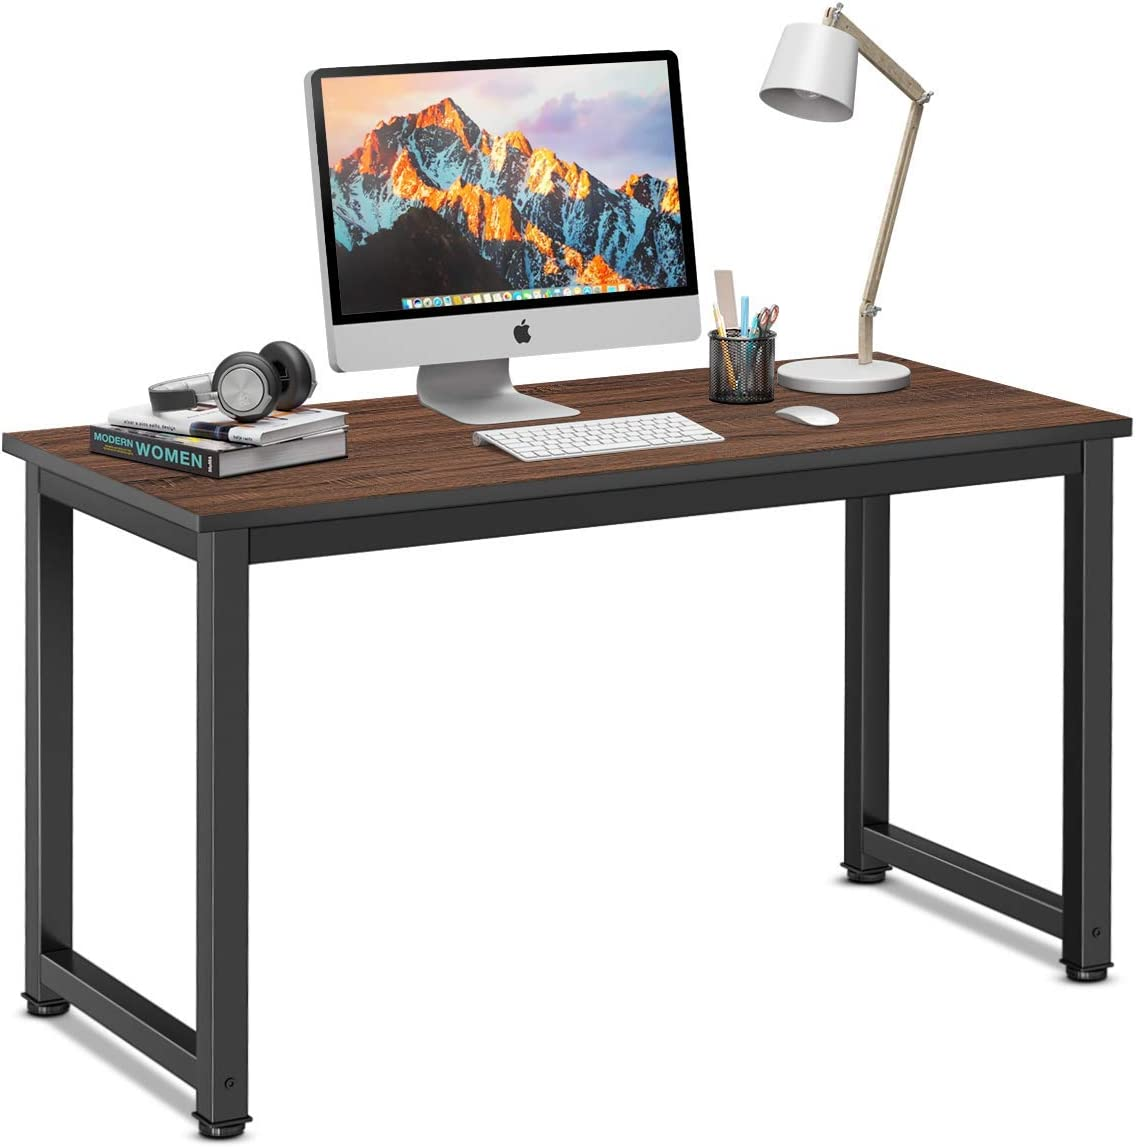 Homemaxs Office Writing Desk, 47 x23 MDF and Metal Office Computer Desk for Home Office Workstation